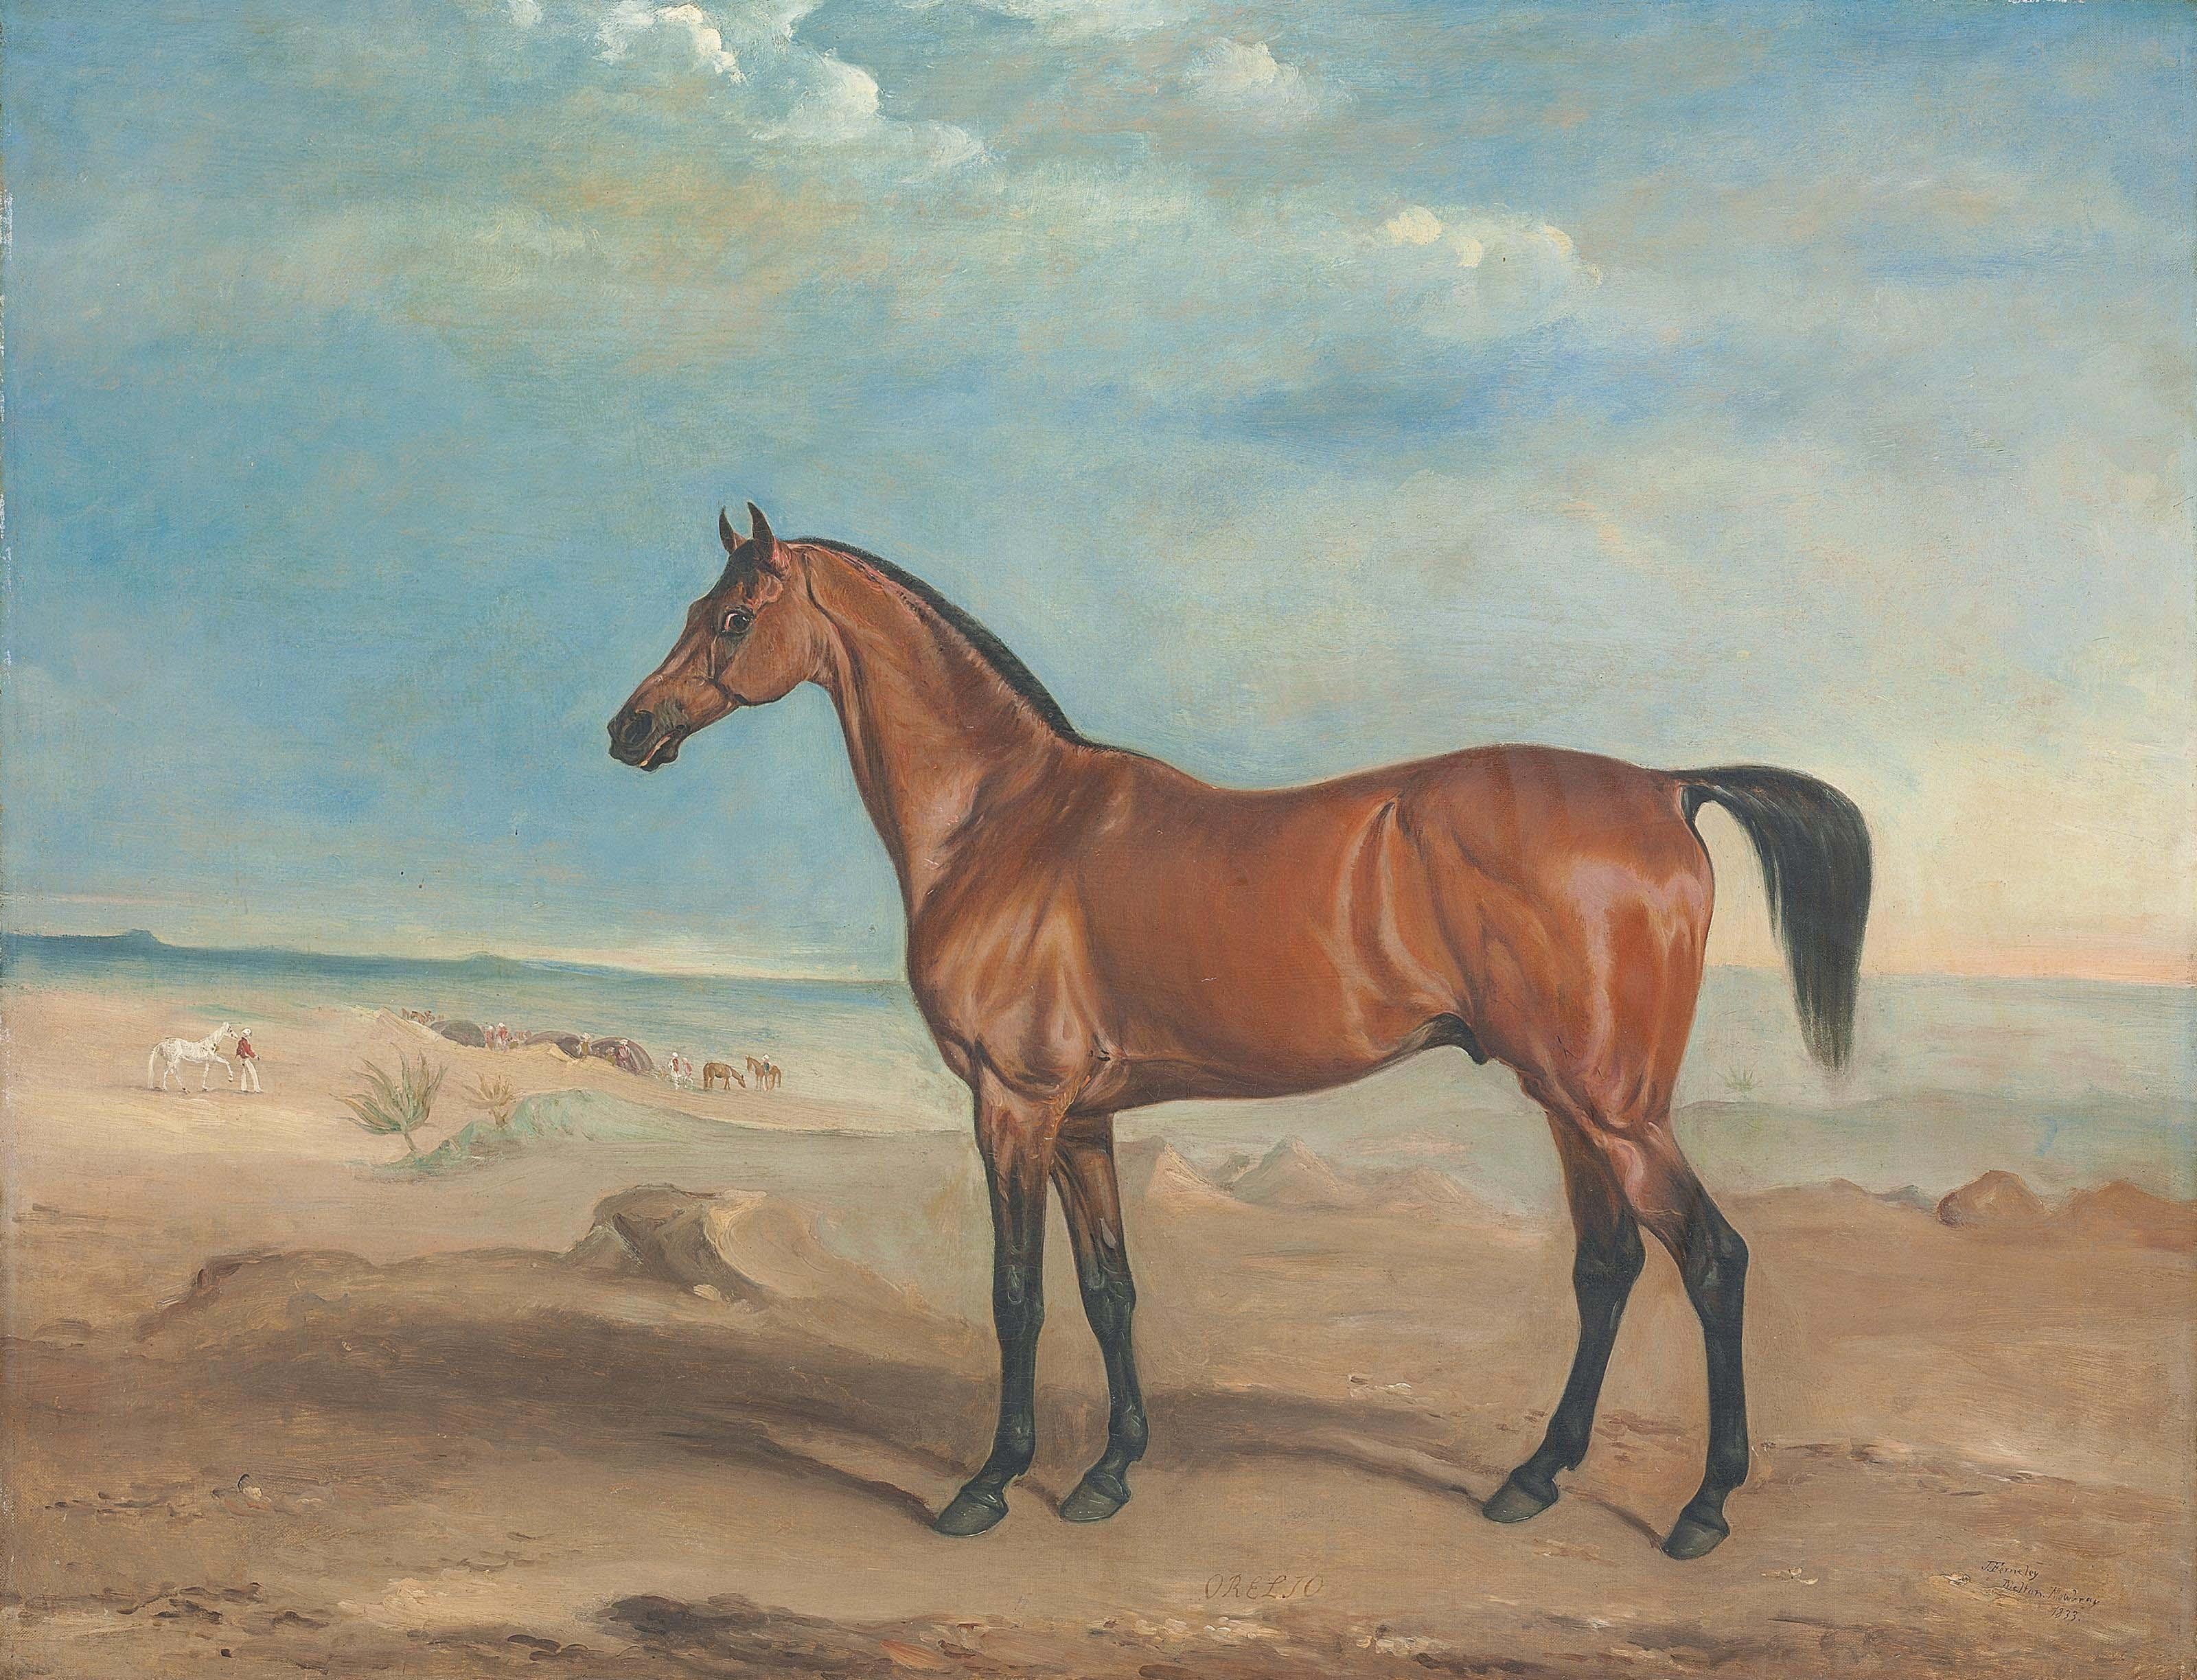 The Arab stallion 'Orelio' in a desert landscape, other horses and figures beyond